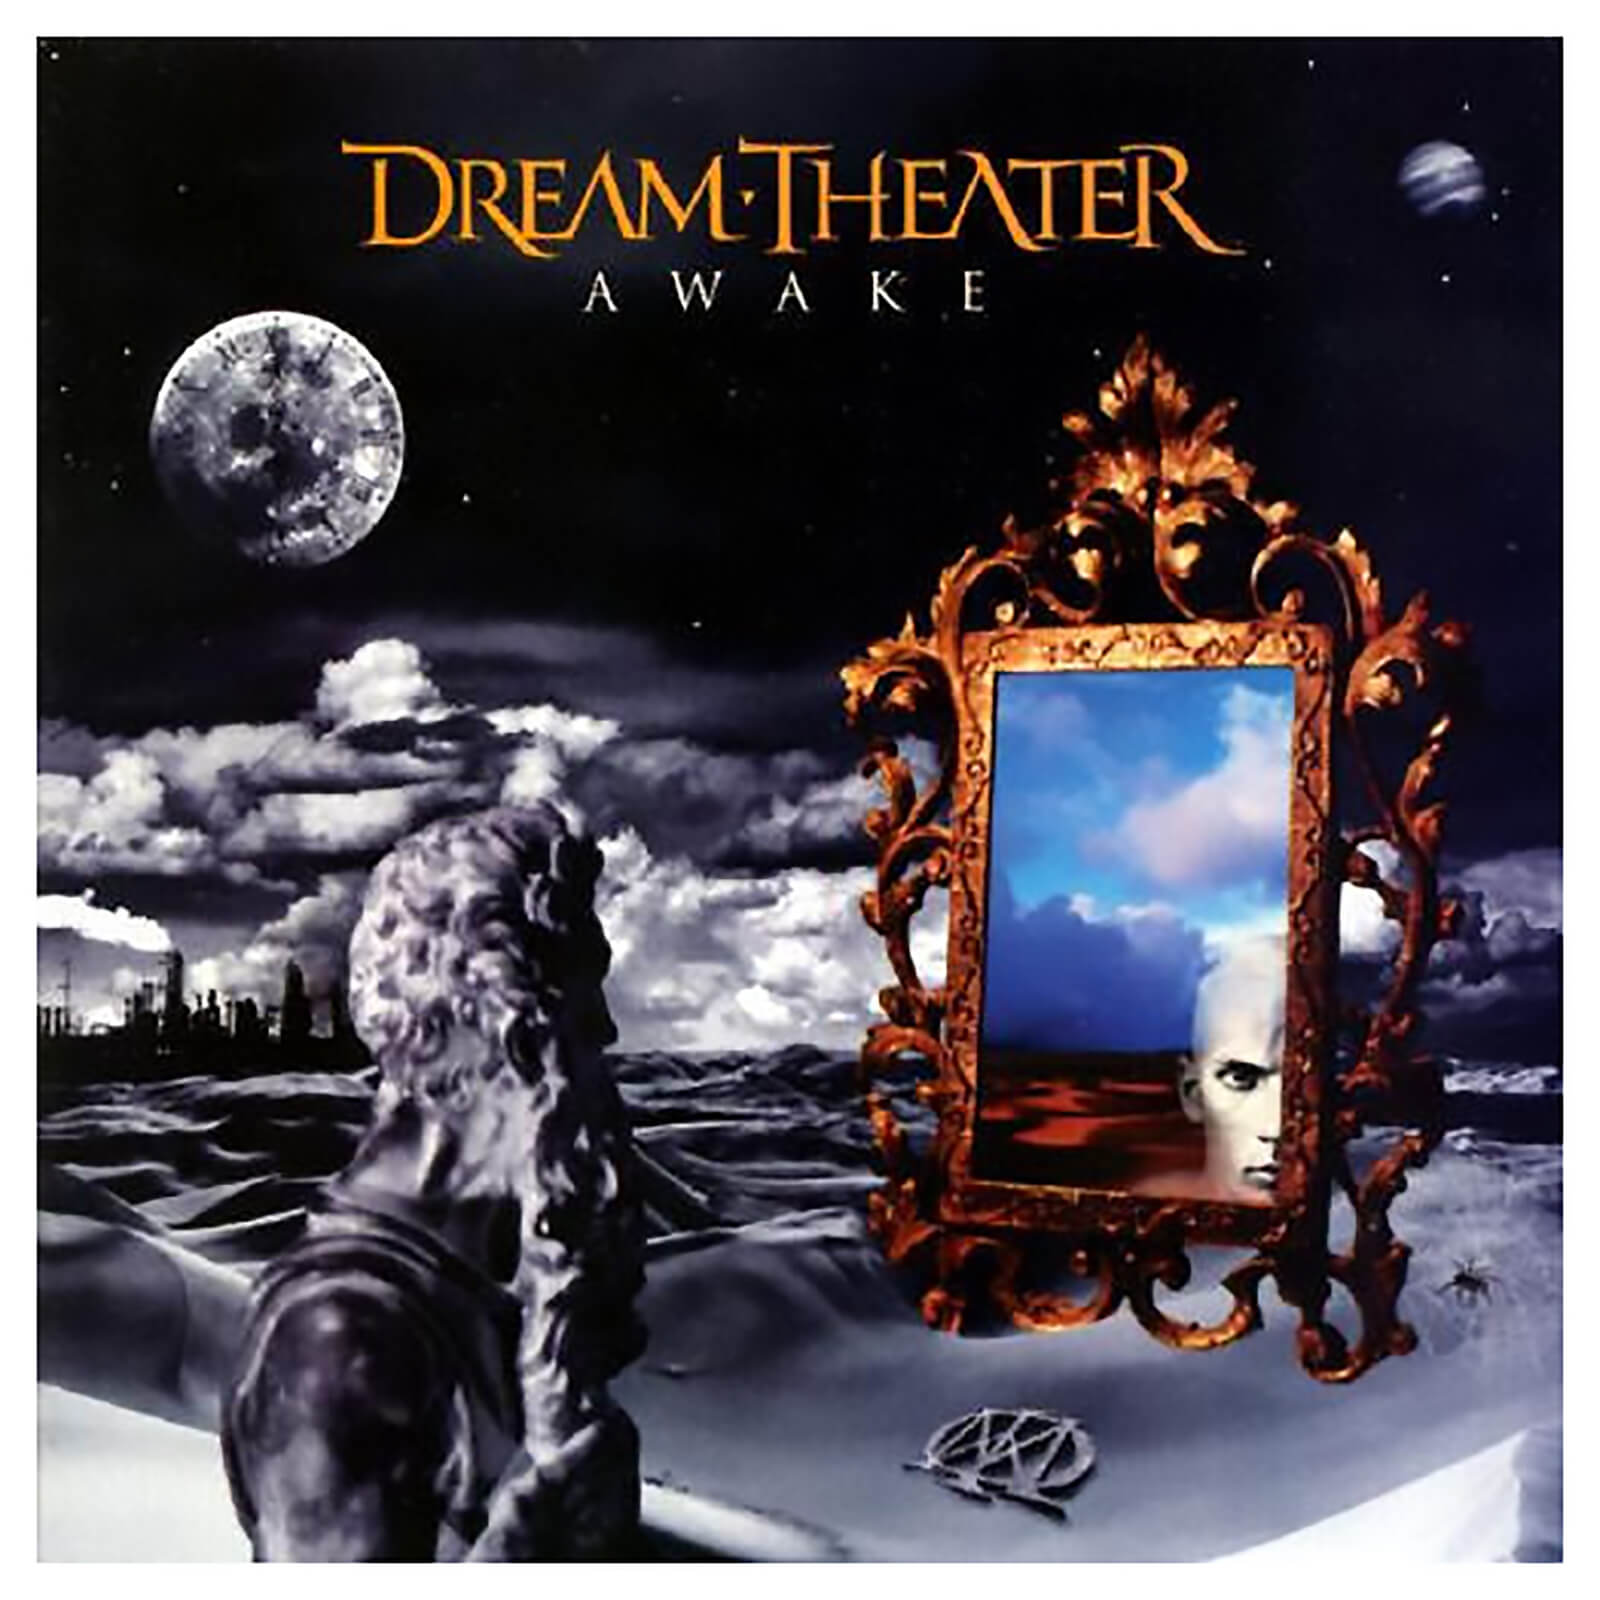 Dream Theater - Awake - Vinyl